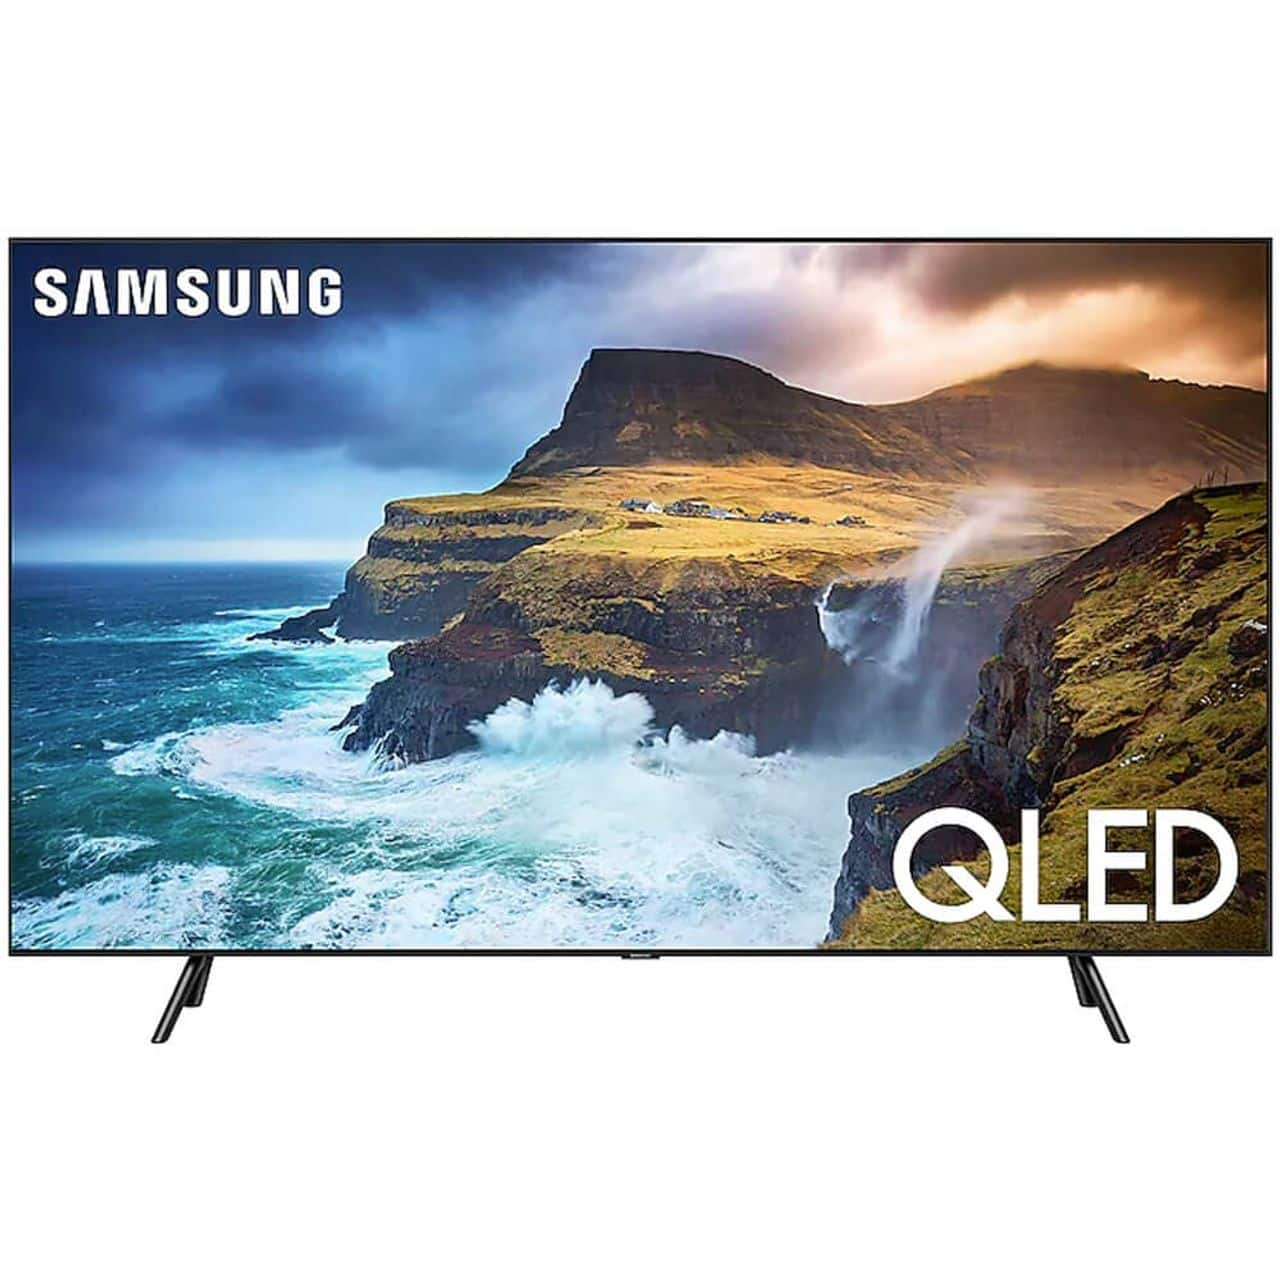 "Samsung 75"" Class Q70 Series 4K UHD QLED Smart TV (2019 Model) QN75Q70RAFXZA – $1699 + Free Shipping"